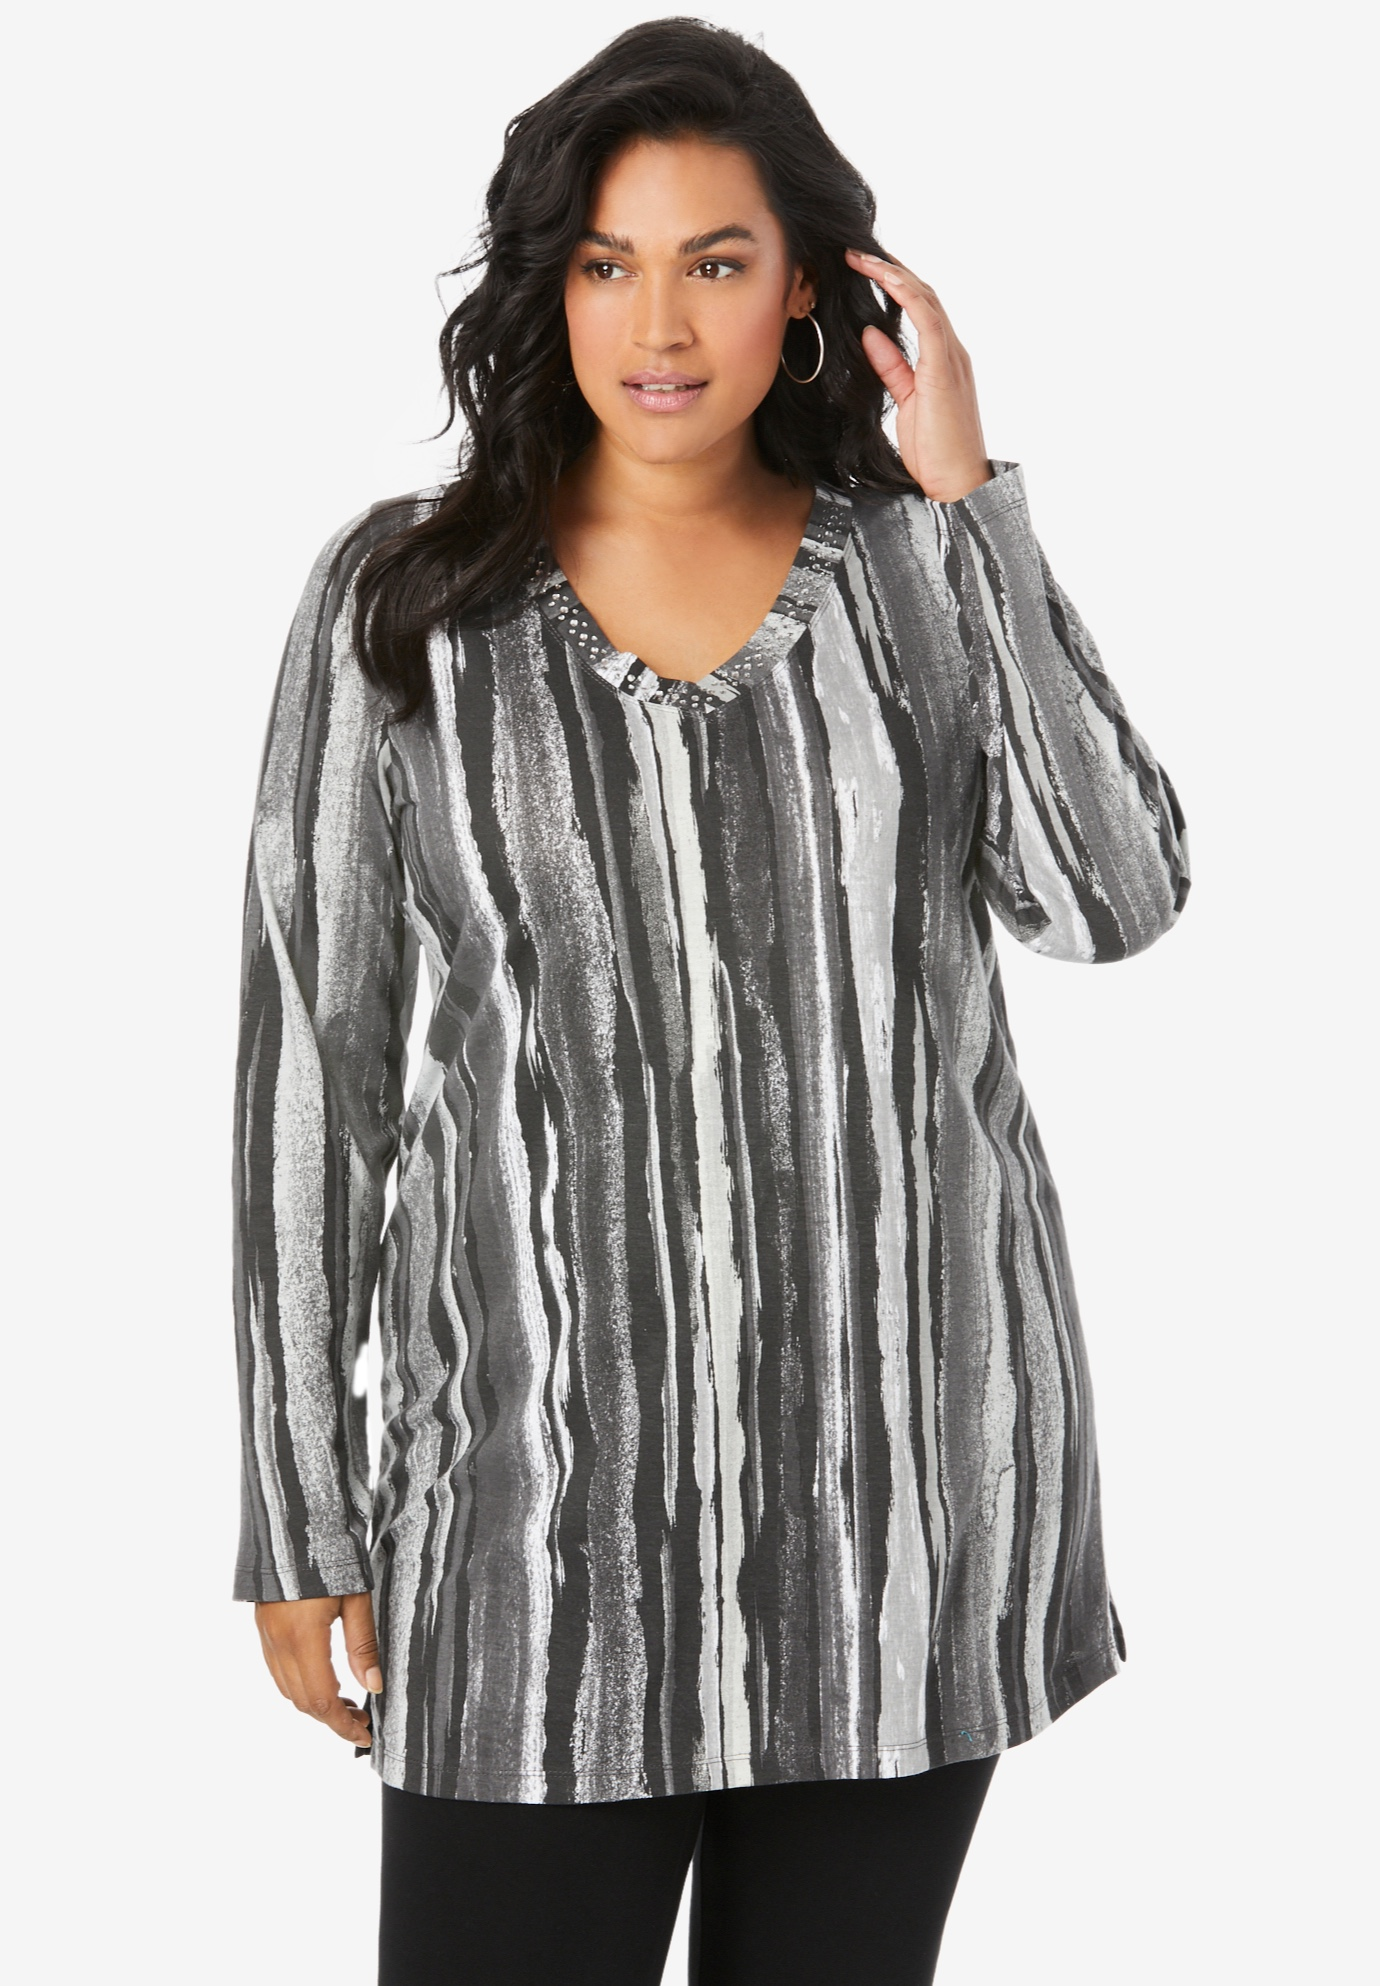 Studded Tie-Dye Long Sleeve Tunic,